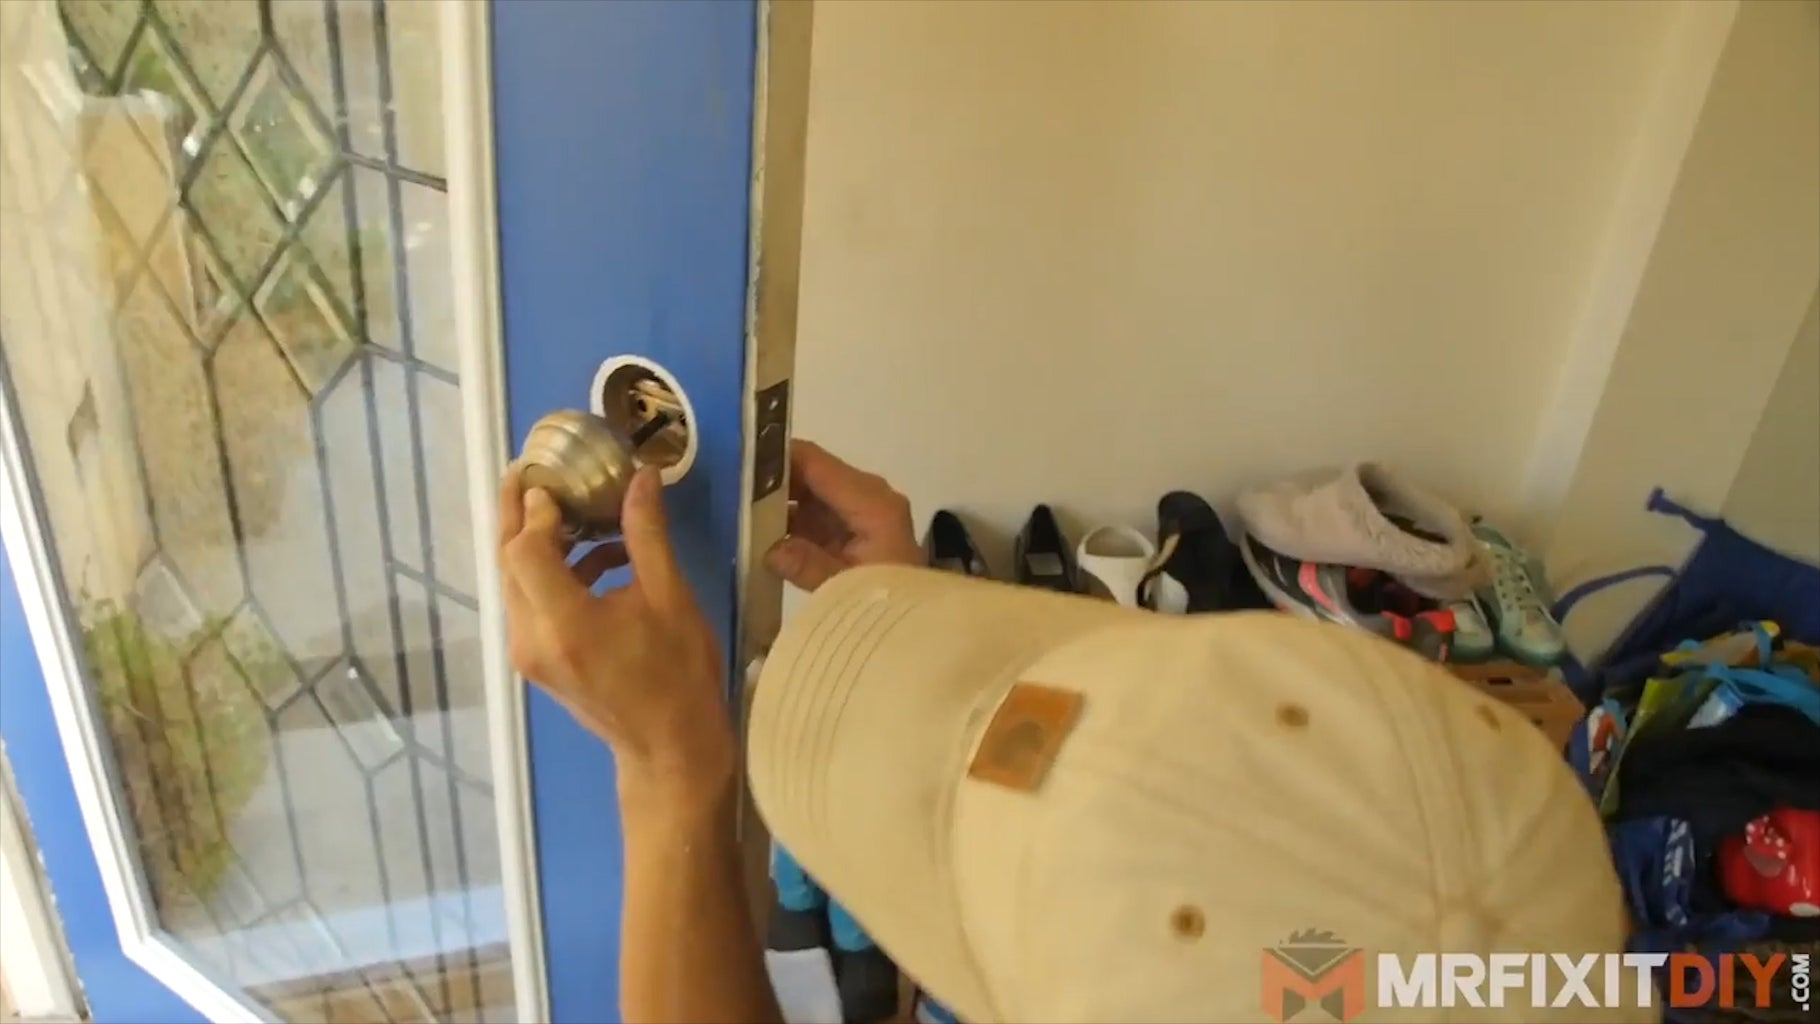 Install the New Glass Insert and Reinstall the Door